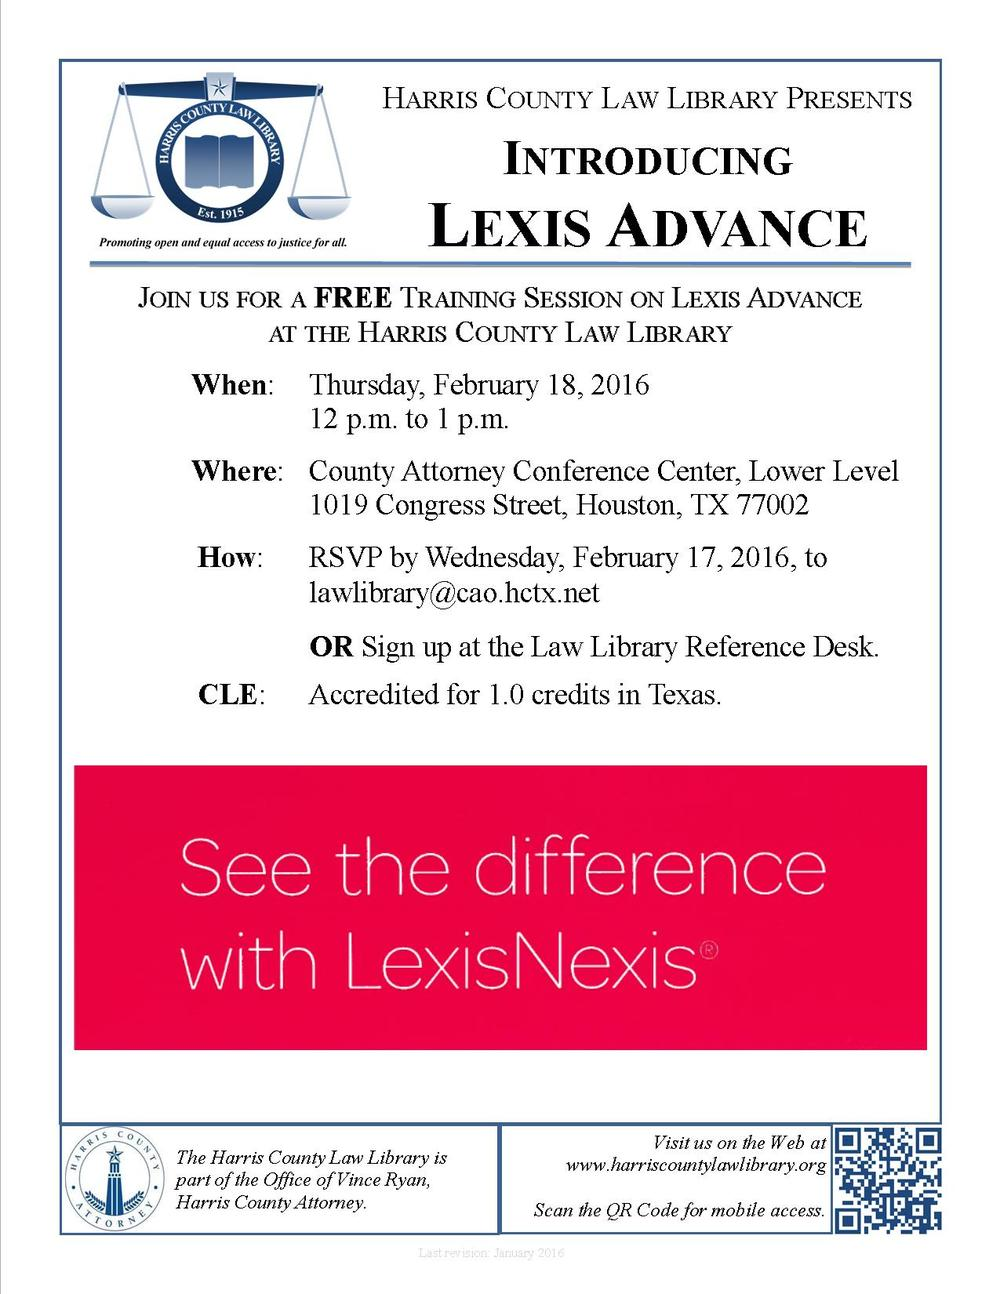 Link to Lexis Advance training event page - Feb. 18, noon to 1pm